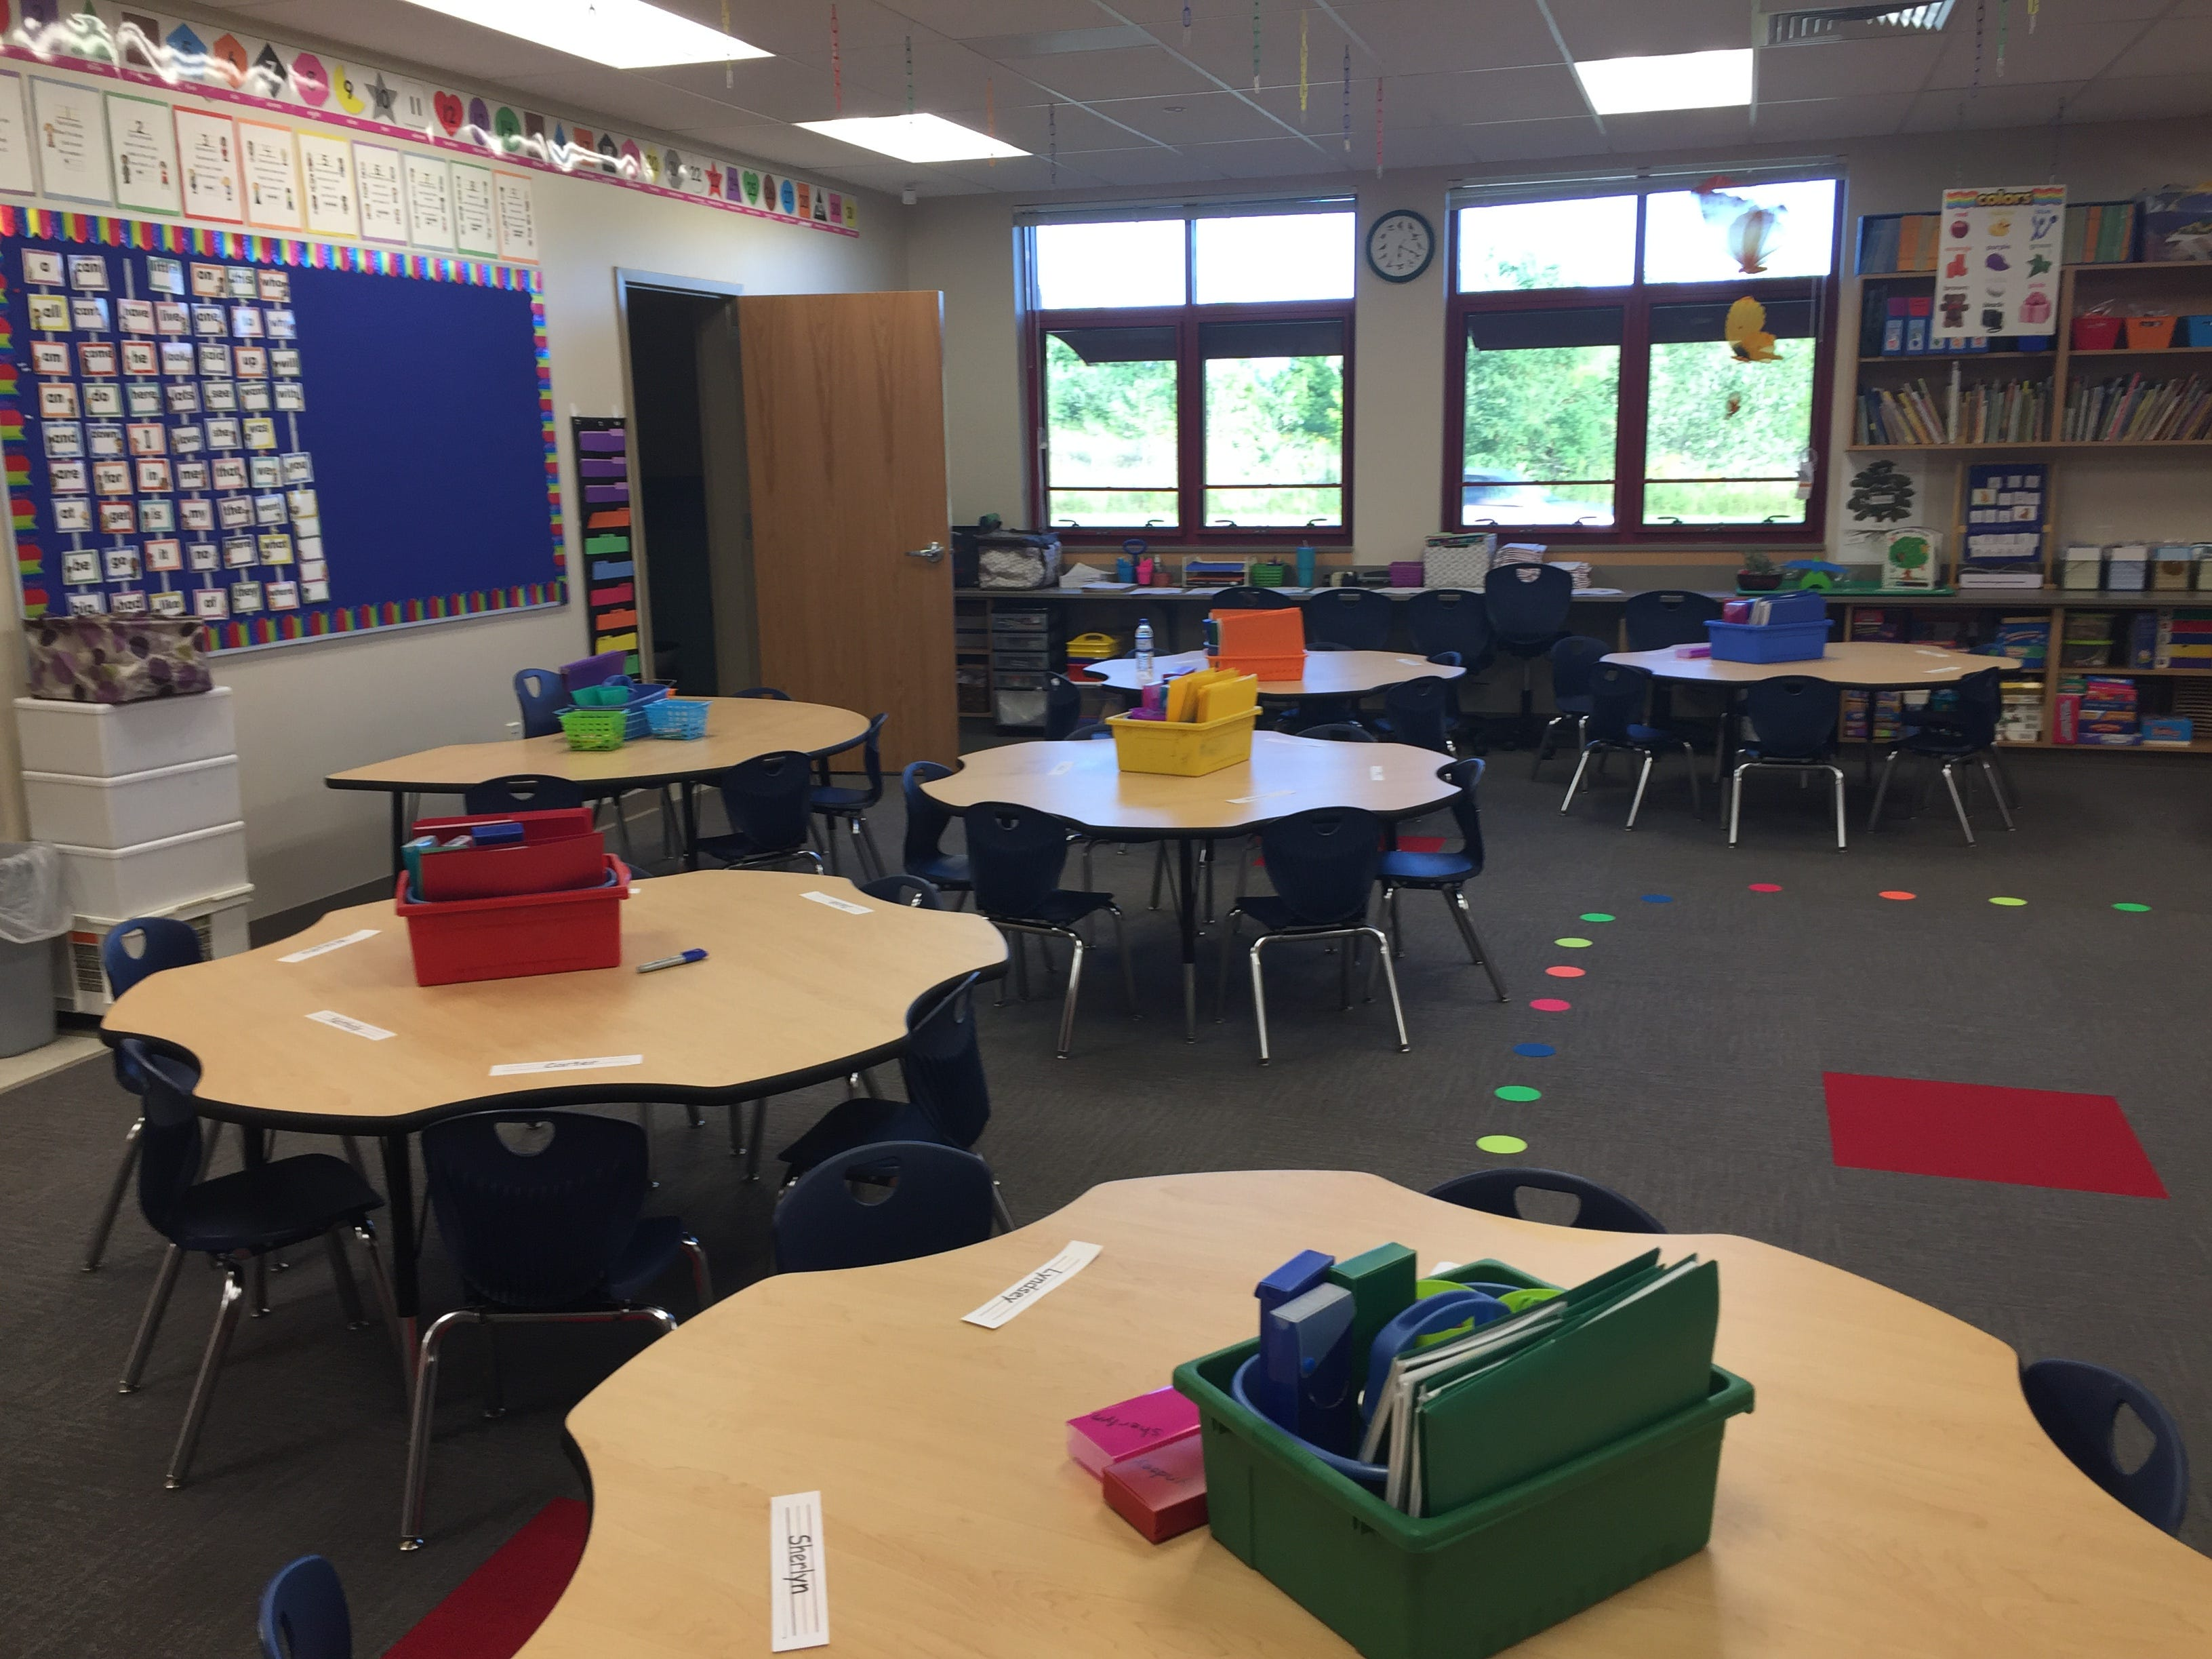 A classroom in the new Northwest Elementary School Aug. 23, 2018. All classrooms are equipped with a voice amplification system and plenty of windows to provide natural lighting.